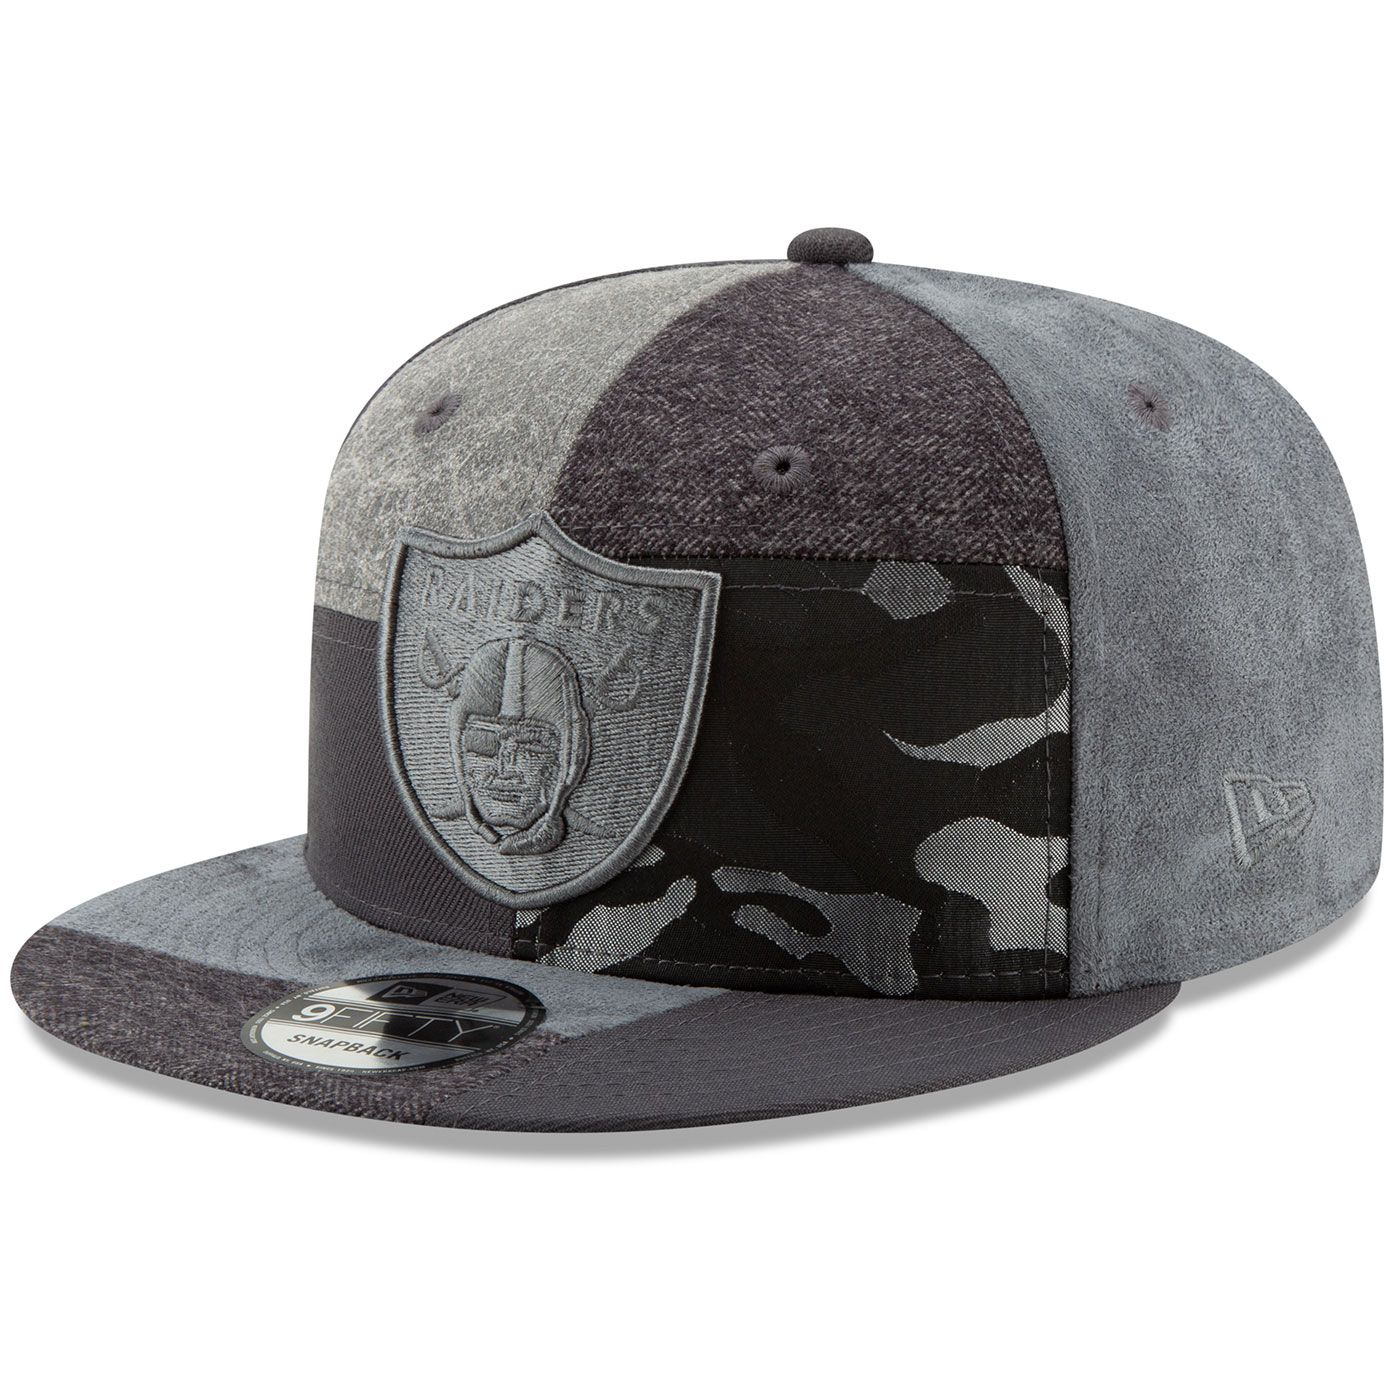 purchase cheap 03e8f 77d2f Raiders New Era 9Fifty Premium Patched Cap